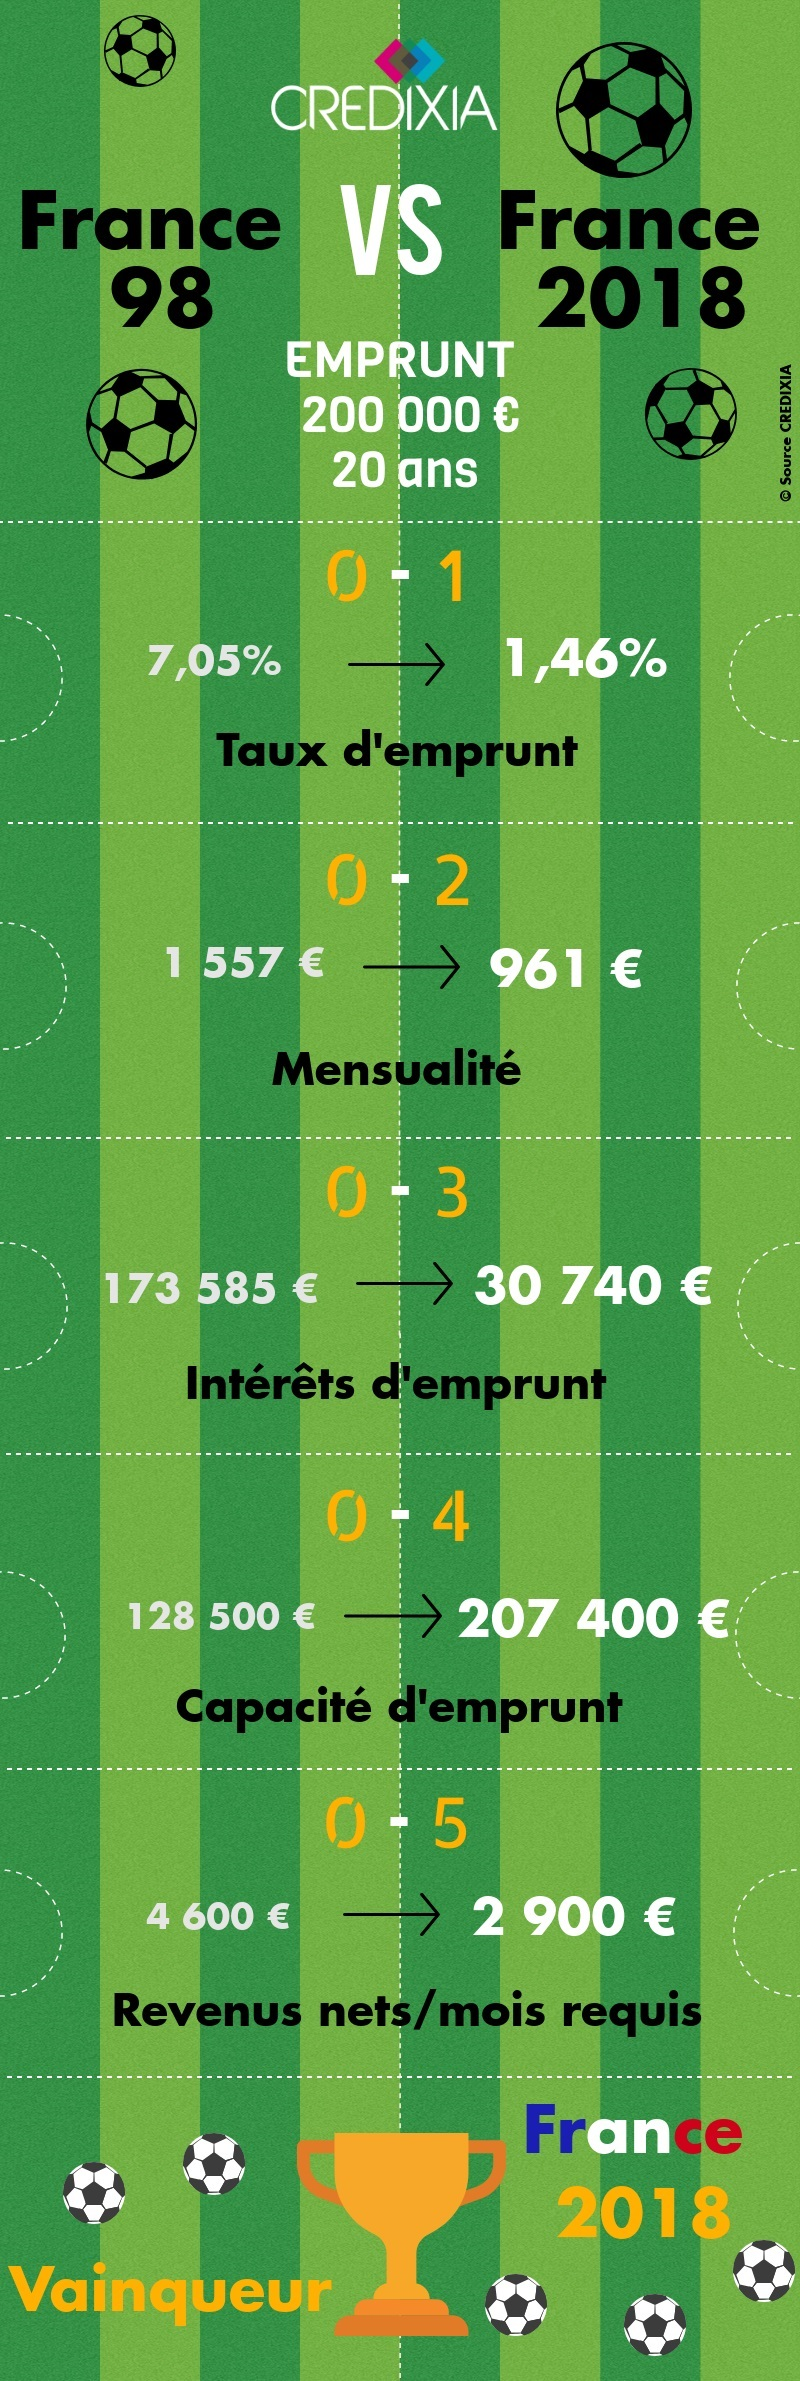 Infographie CREDIXIA taux immobiliers